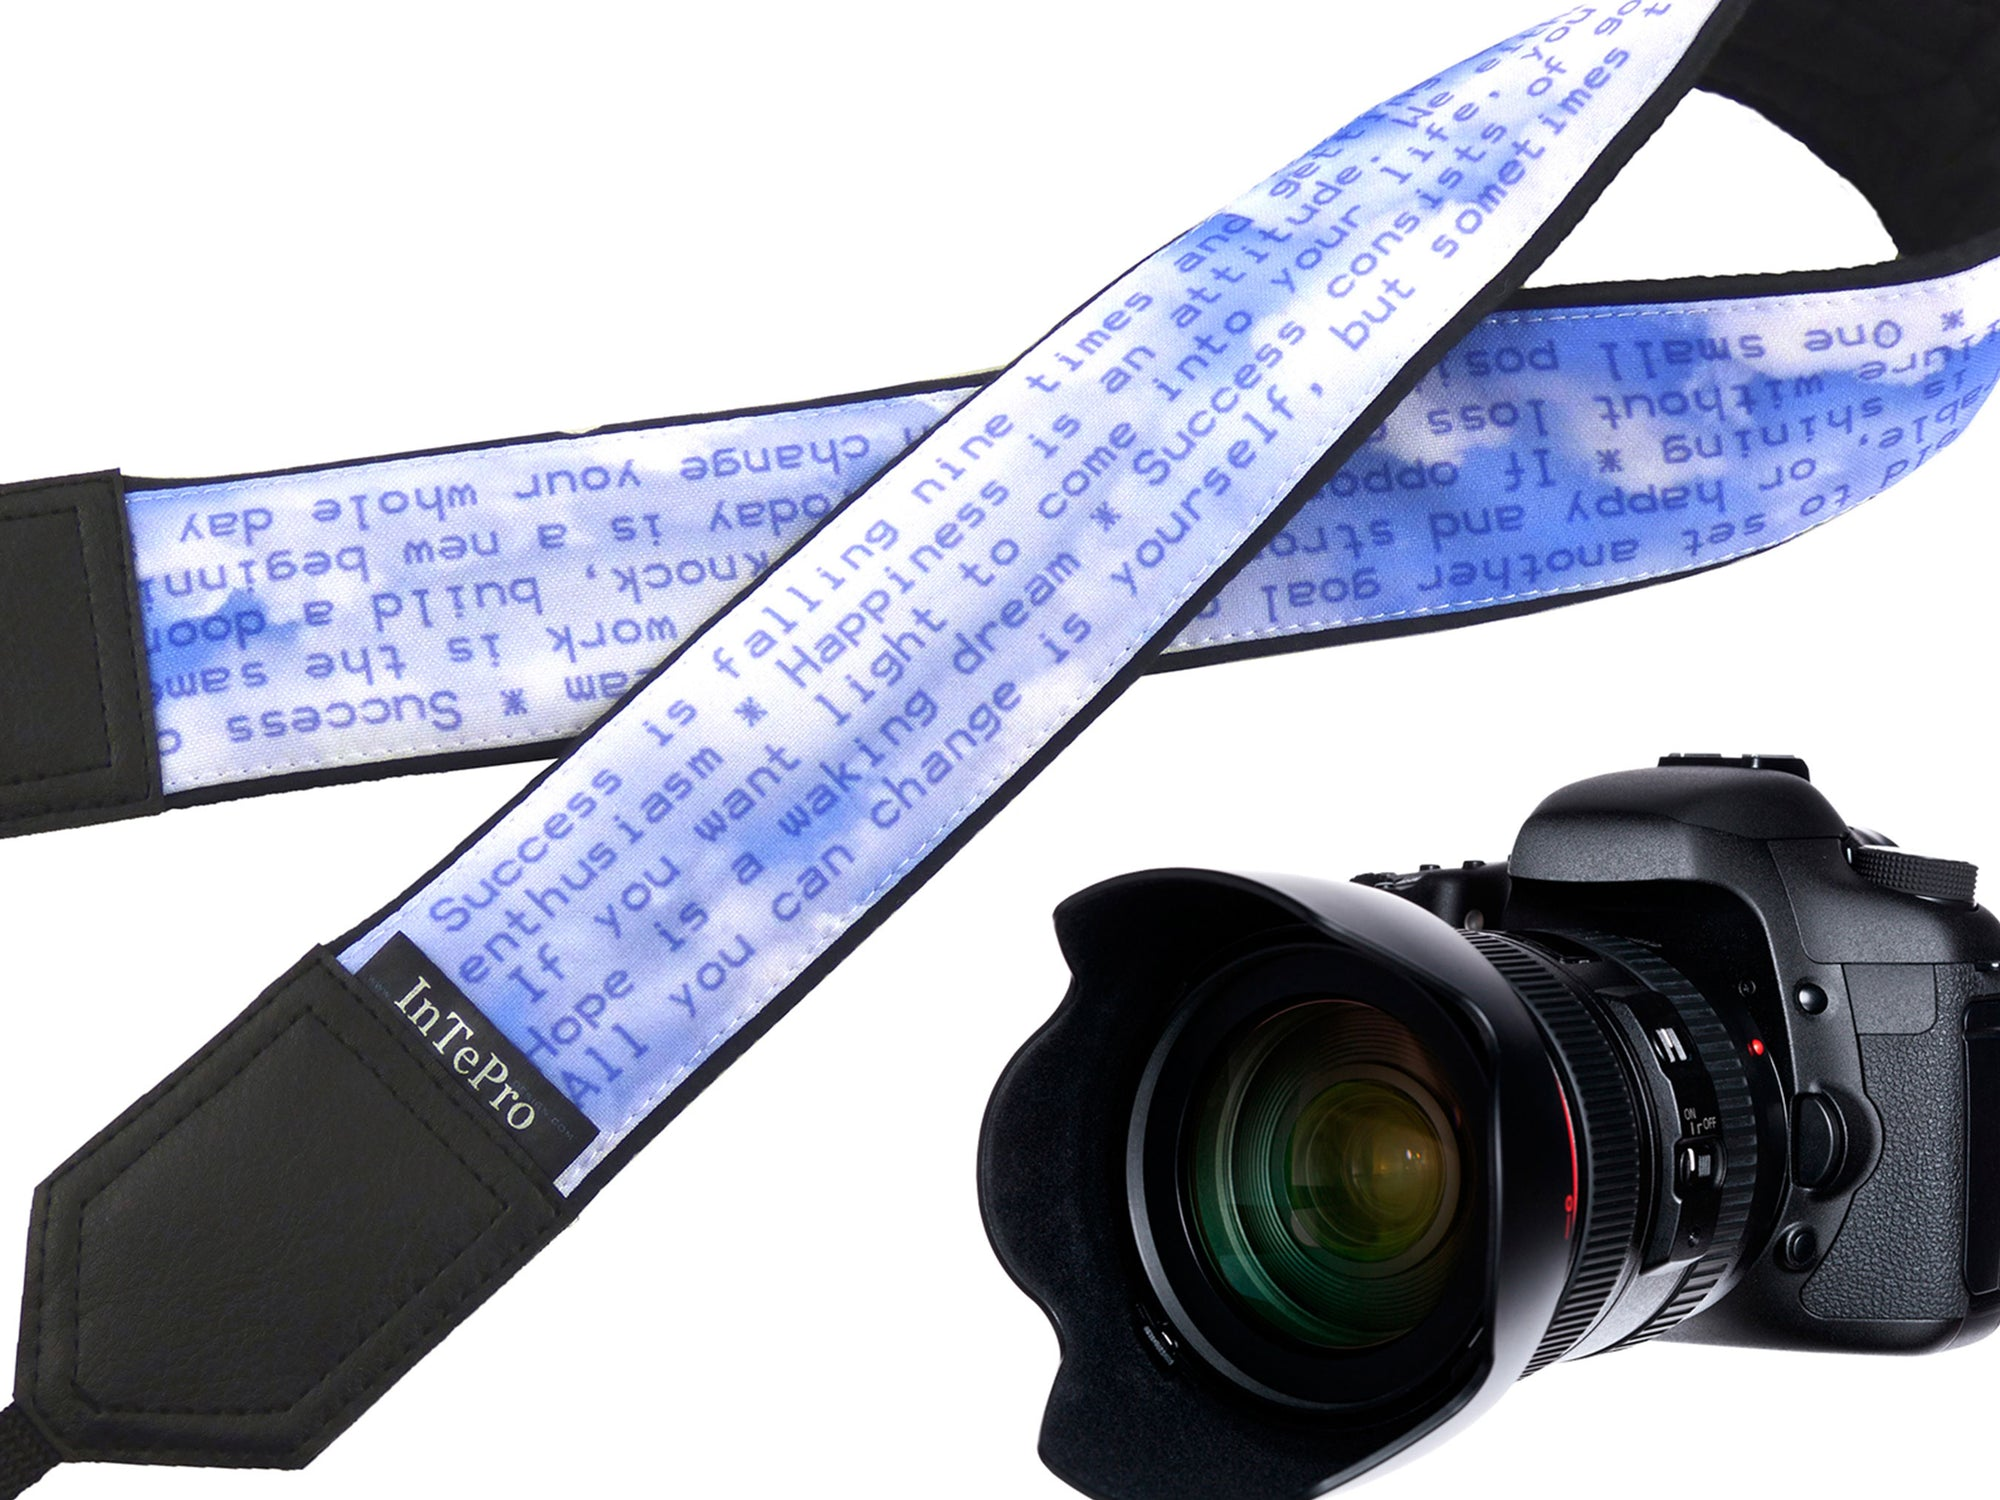 Camera strap with Positive thoughts. DSLR / SLR accessories. Canon Nikon Durable, light and padded camera strap with personalization.